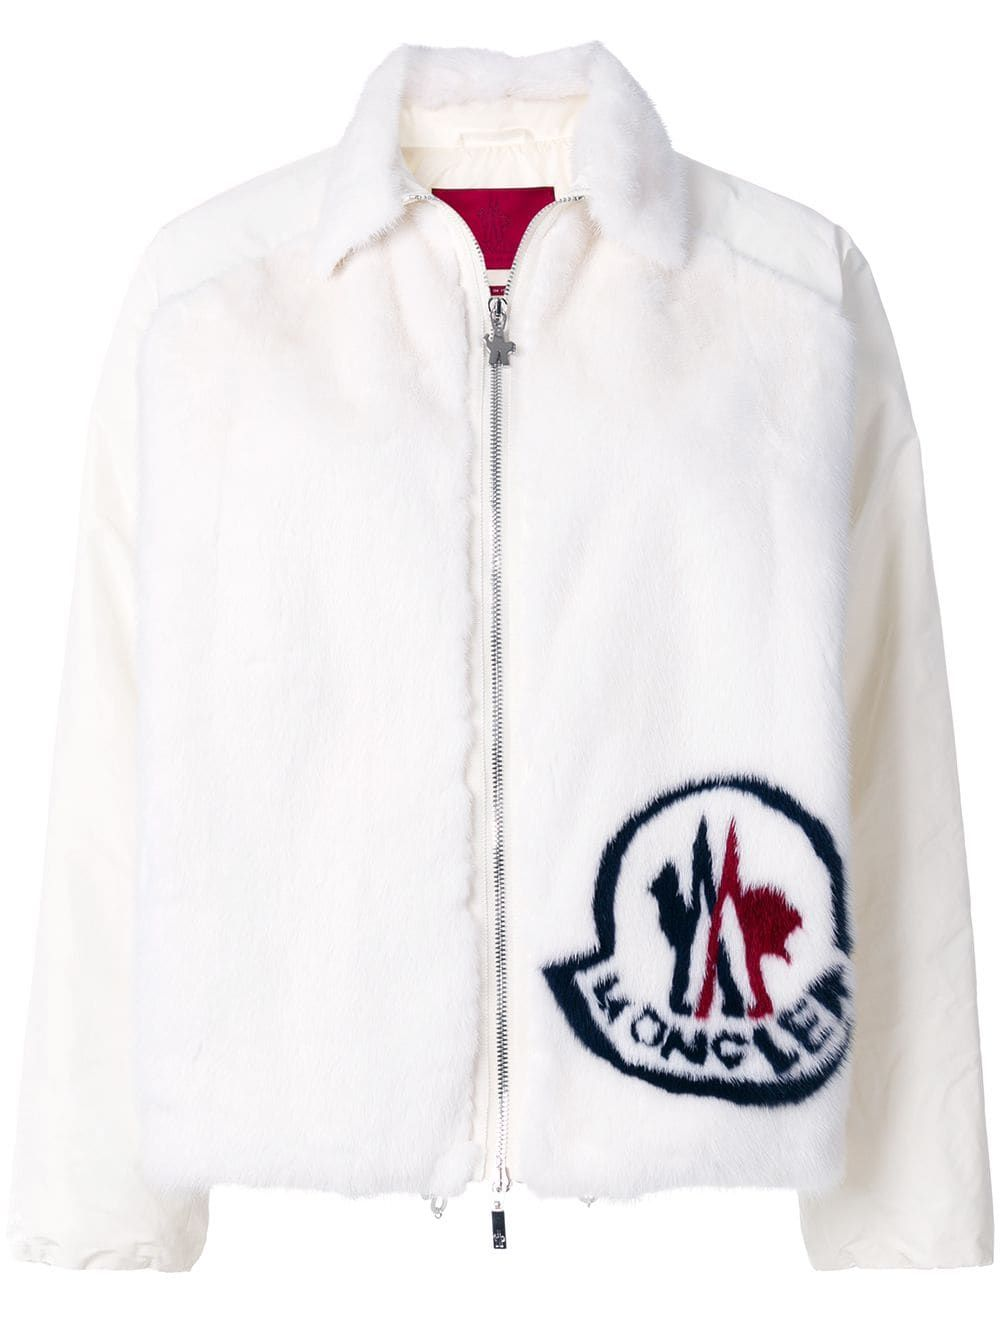 a01e0f6a7 Moncler branded jacket - White in 2019 | Products | Jackets, Moncler ...